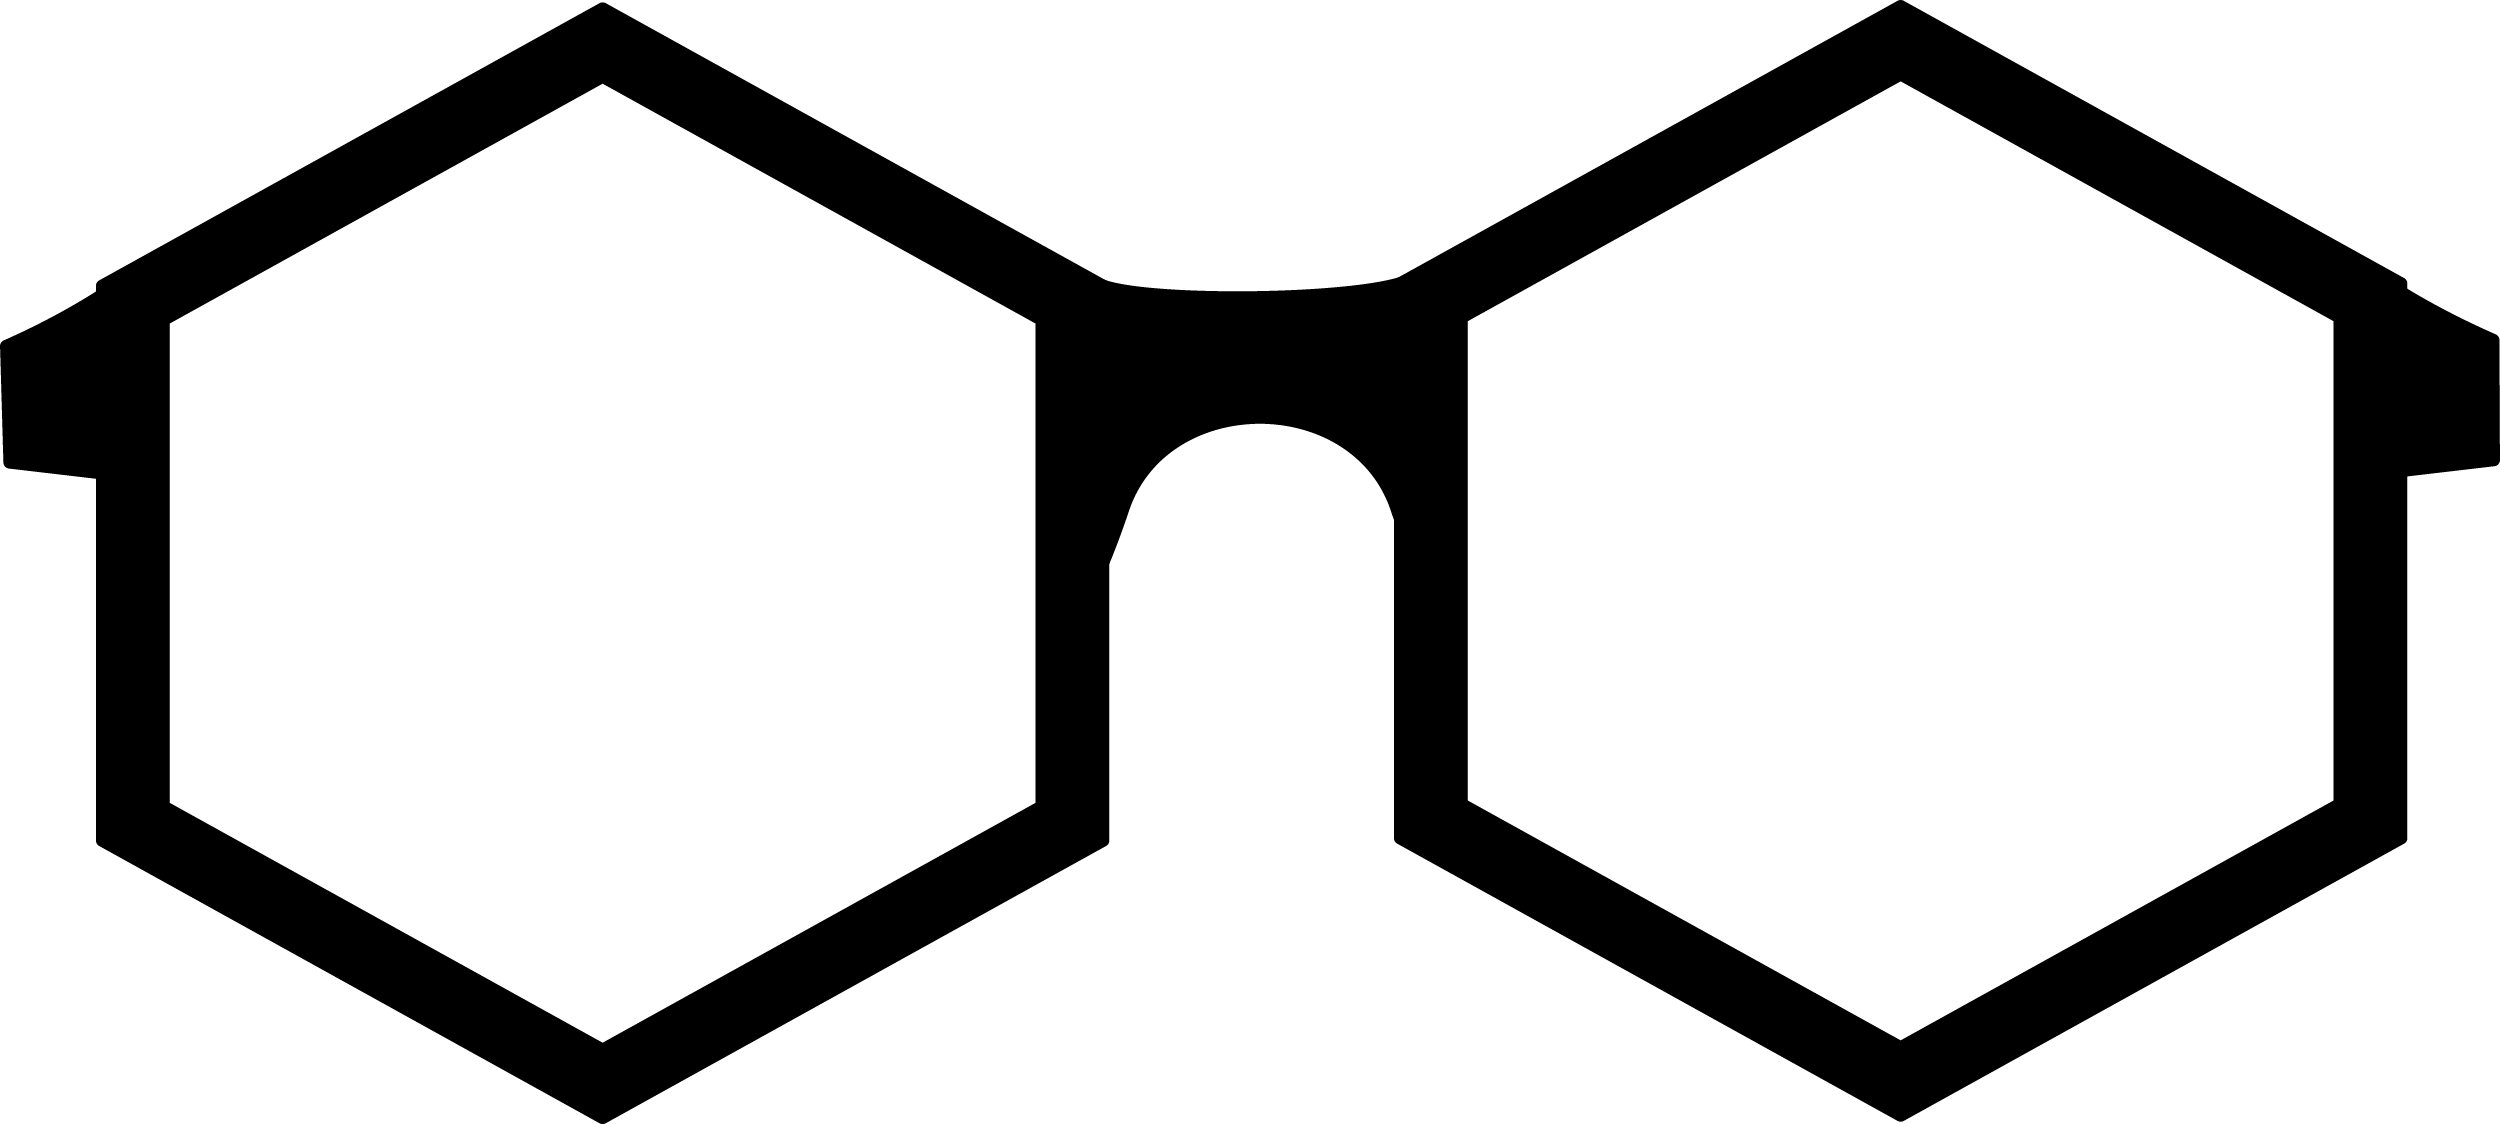 Hexagon Shaped Glasses PNG 27